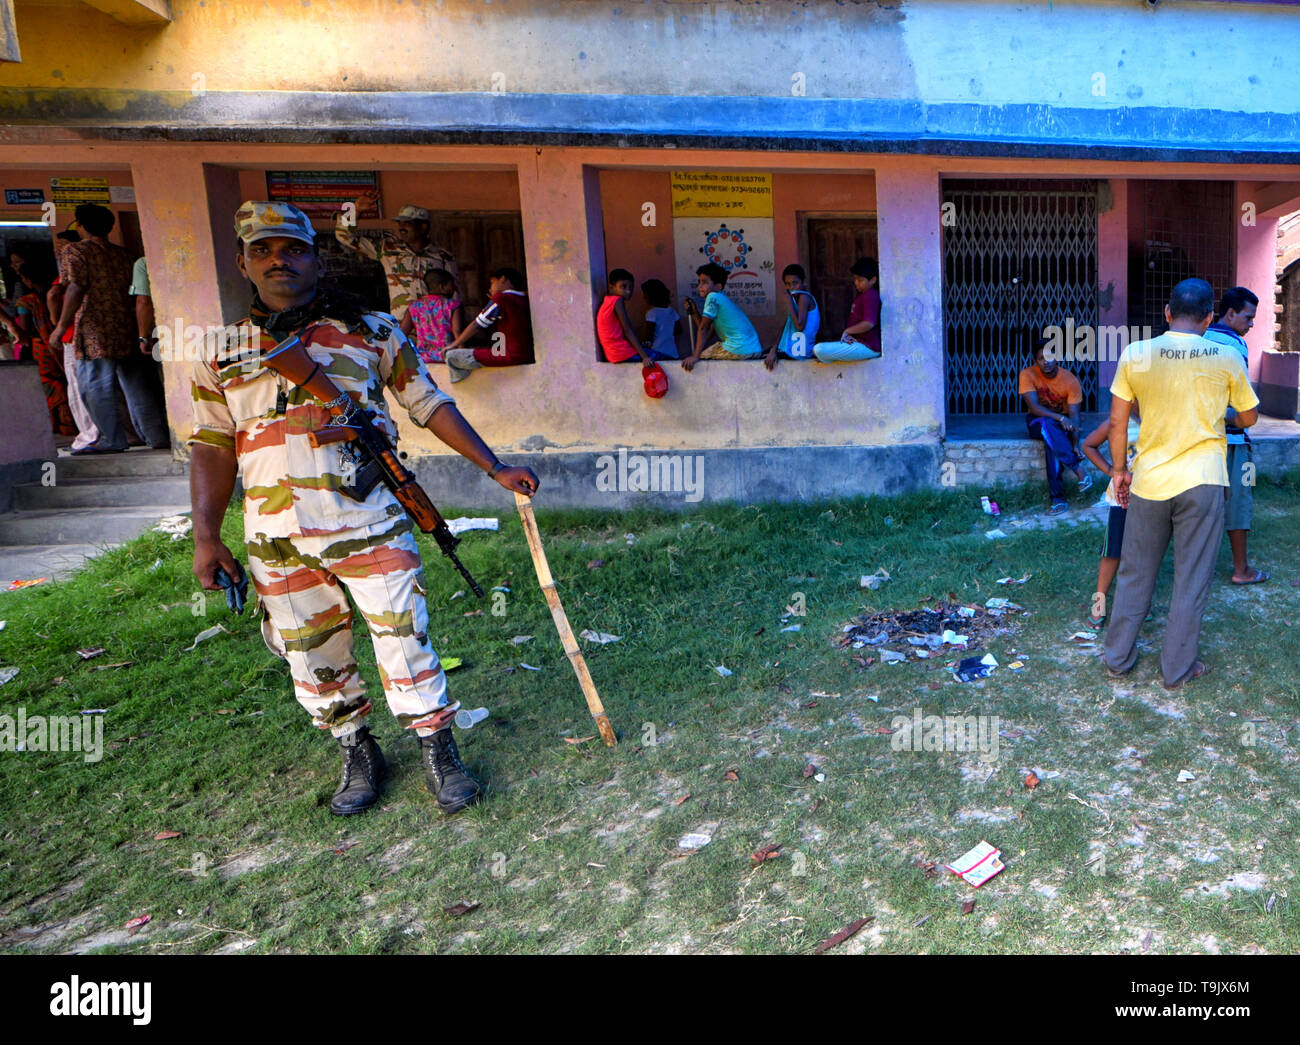 A CISF (Central Industrial Security Force) officer seen standing on guard at a polling station during the 7th Phase (Final Phase) of General Elections in Baruipur, west Bengal. Voting has begun for the 7th phase (final phase) elections in Baruipur, West Bengal. - Stock Image